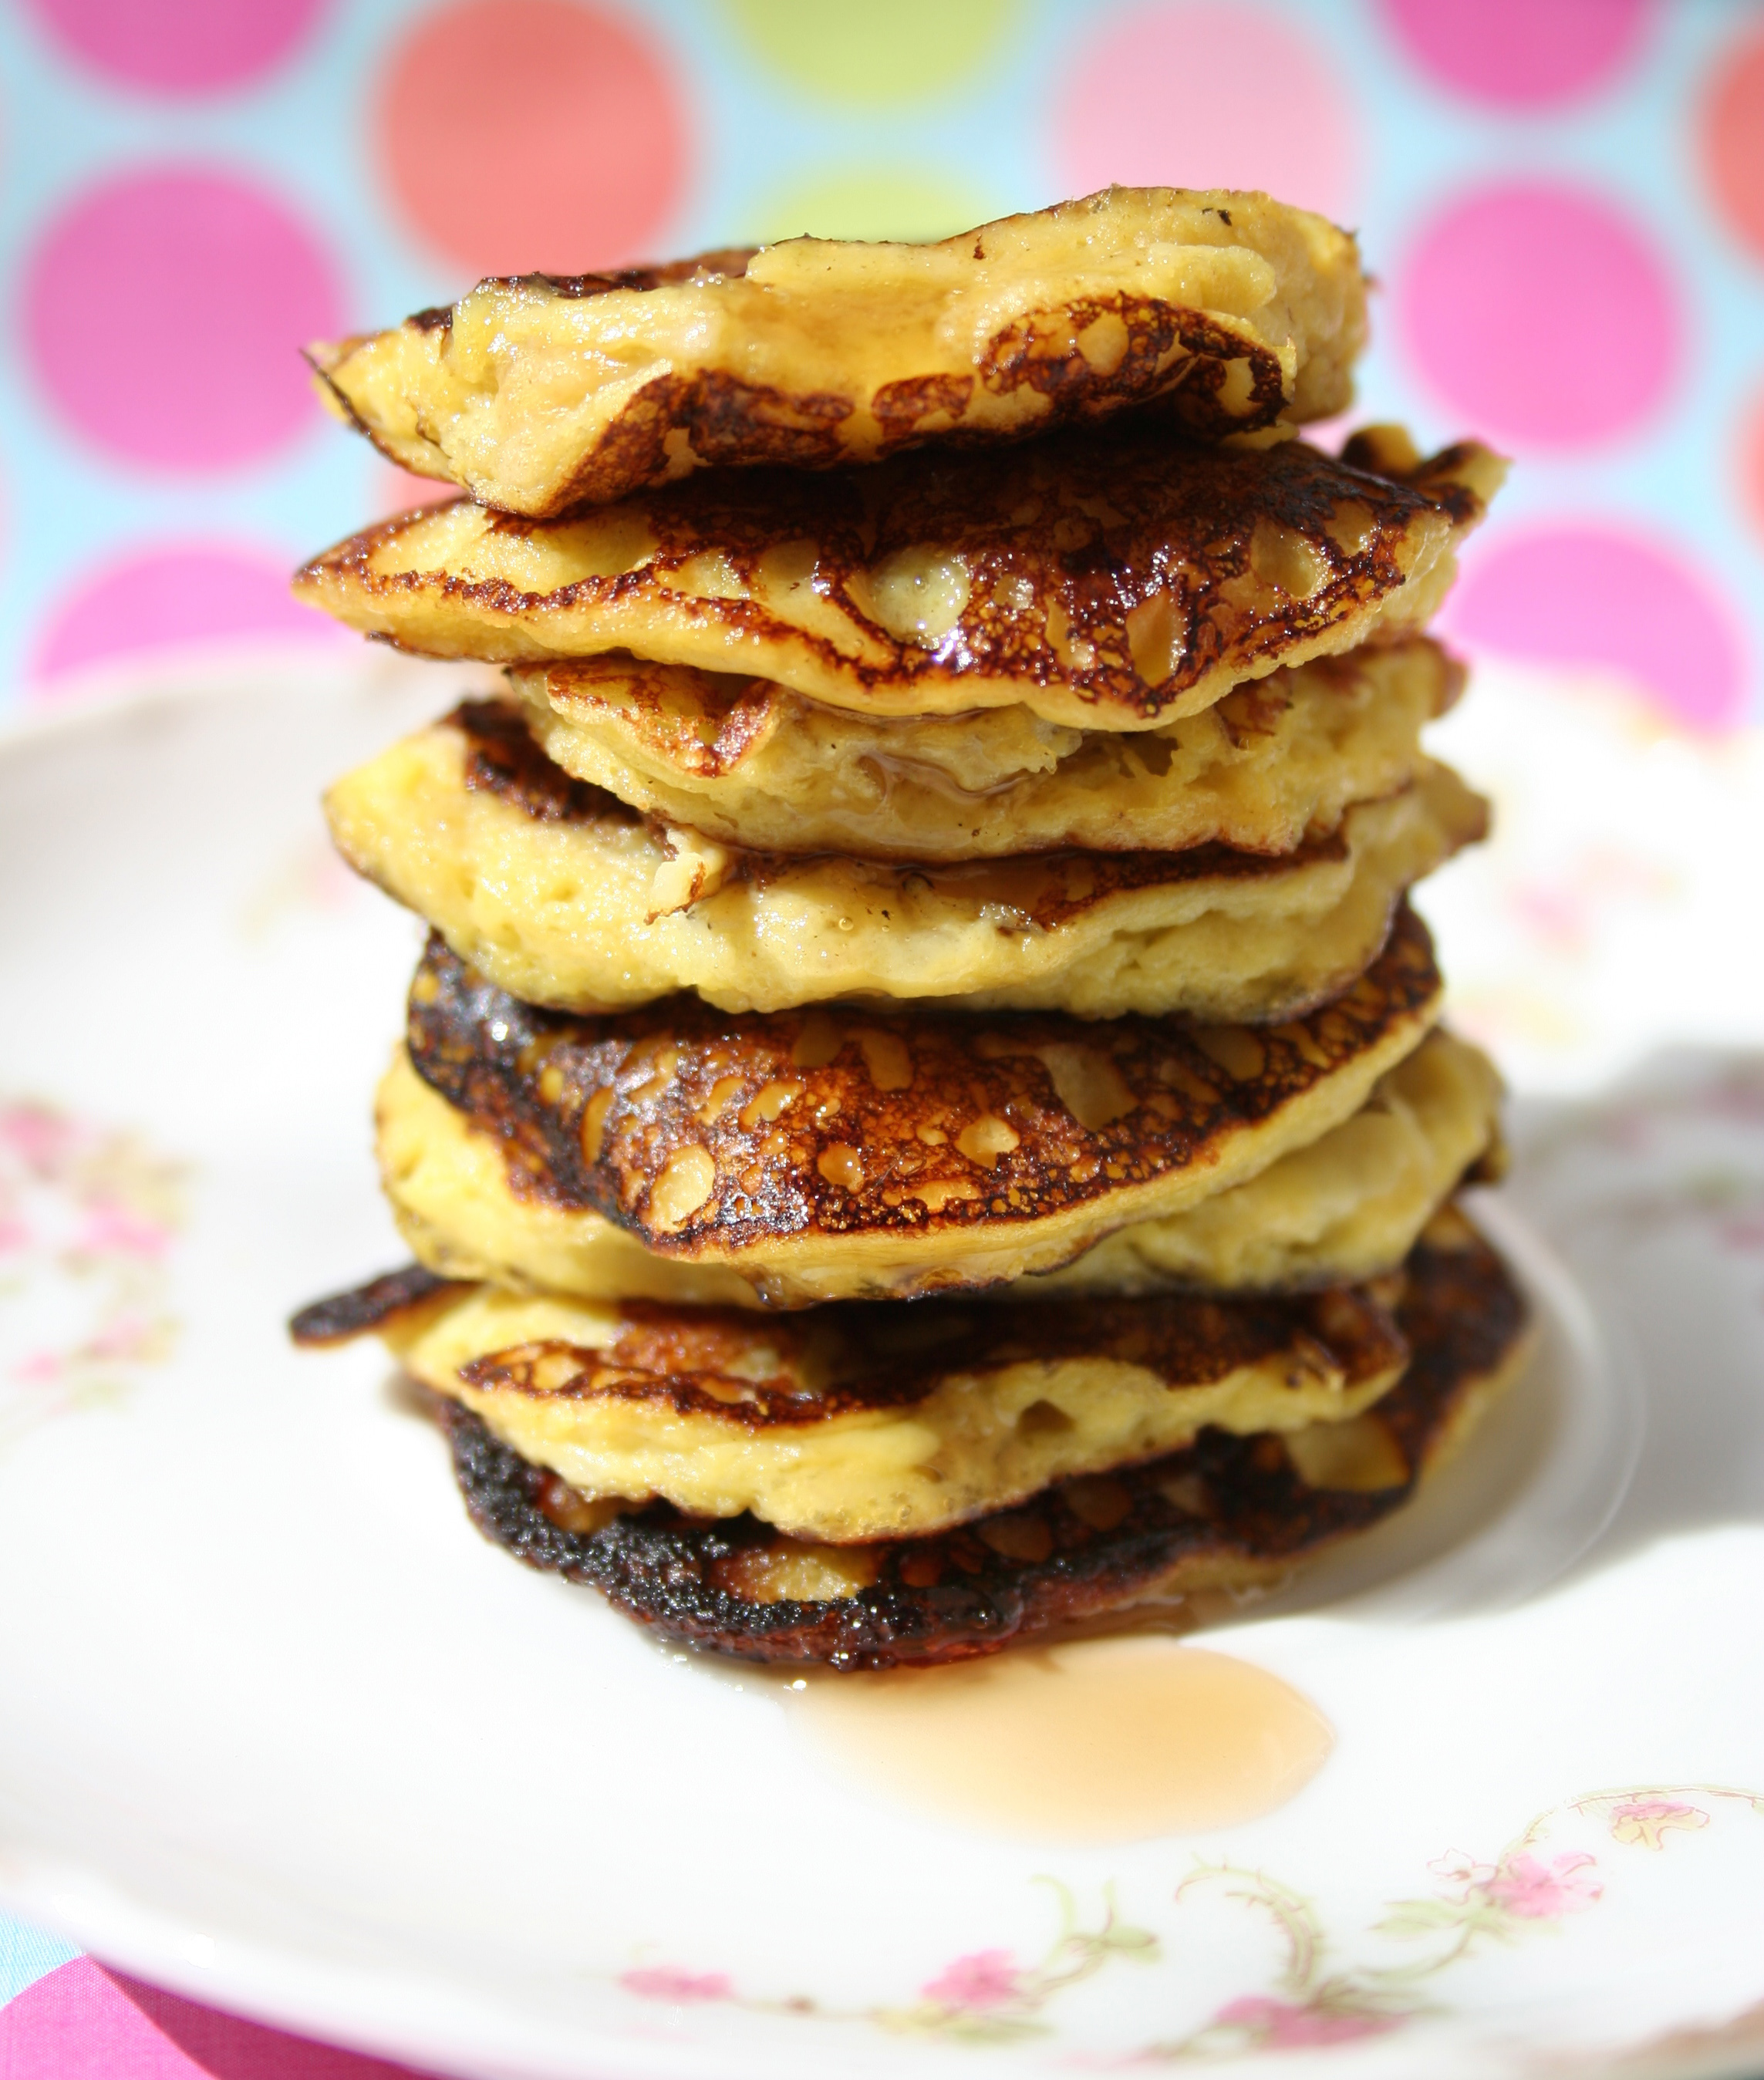 Two-ingredient banana pancakes recipe